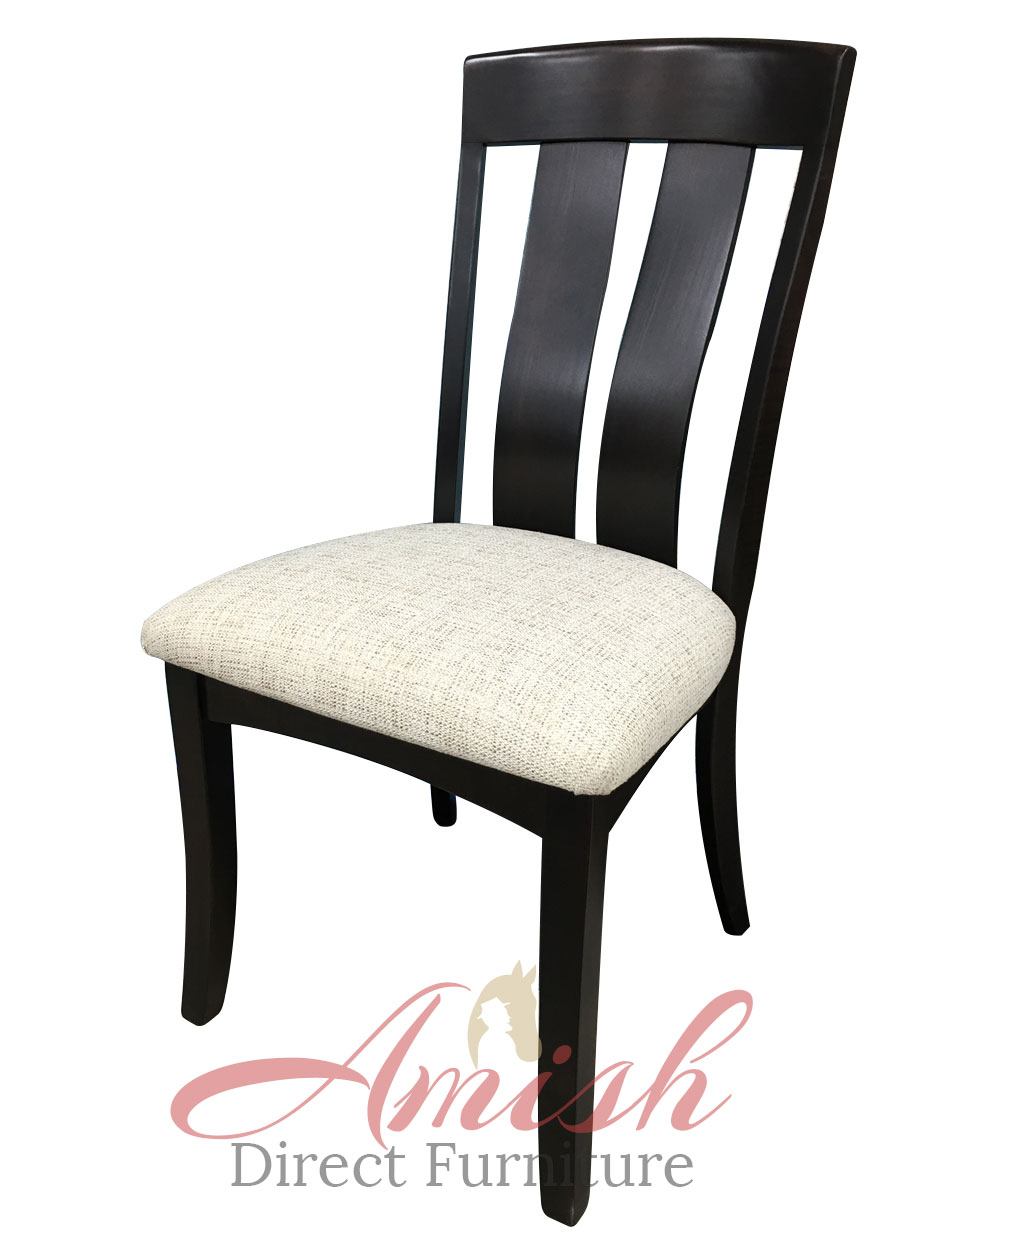 Great Cheyenne Amish Dining And Kitchen Chair [Amish Direct Furniture]